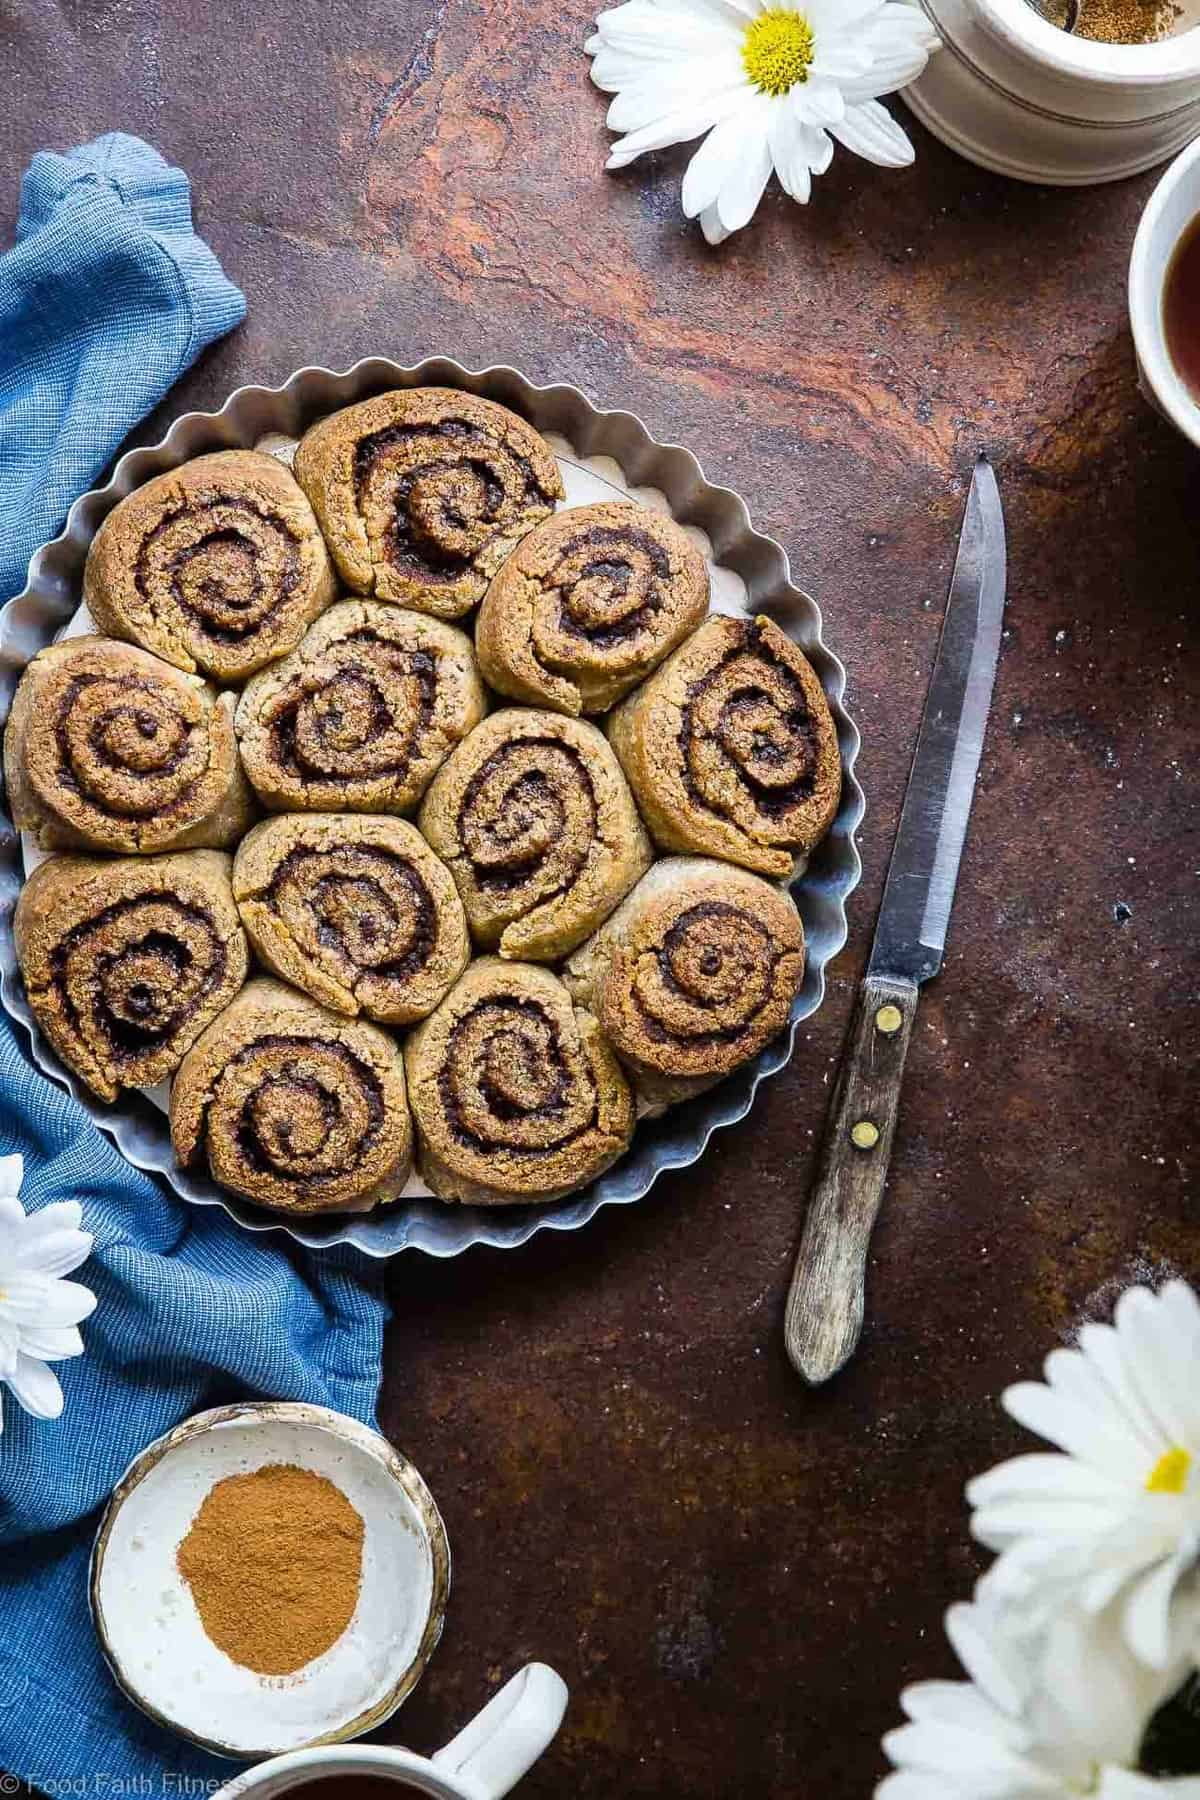 The Best Almond Flour Paleo Cinnamon Rolls - These gluten free cinnamon rolls area simple, wholesome remake of the classic baked good that you can't even tell is healthy, and gluten/dairy free! SO soft, fluffy and YUMMY! | #Foodfaithfitness | #Paleo #Glutenfree #Healthy #Dairyfree #Cinnamonrolls